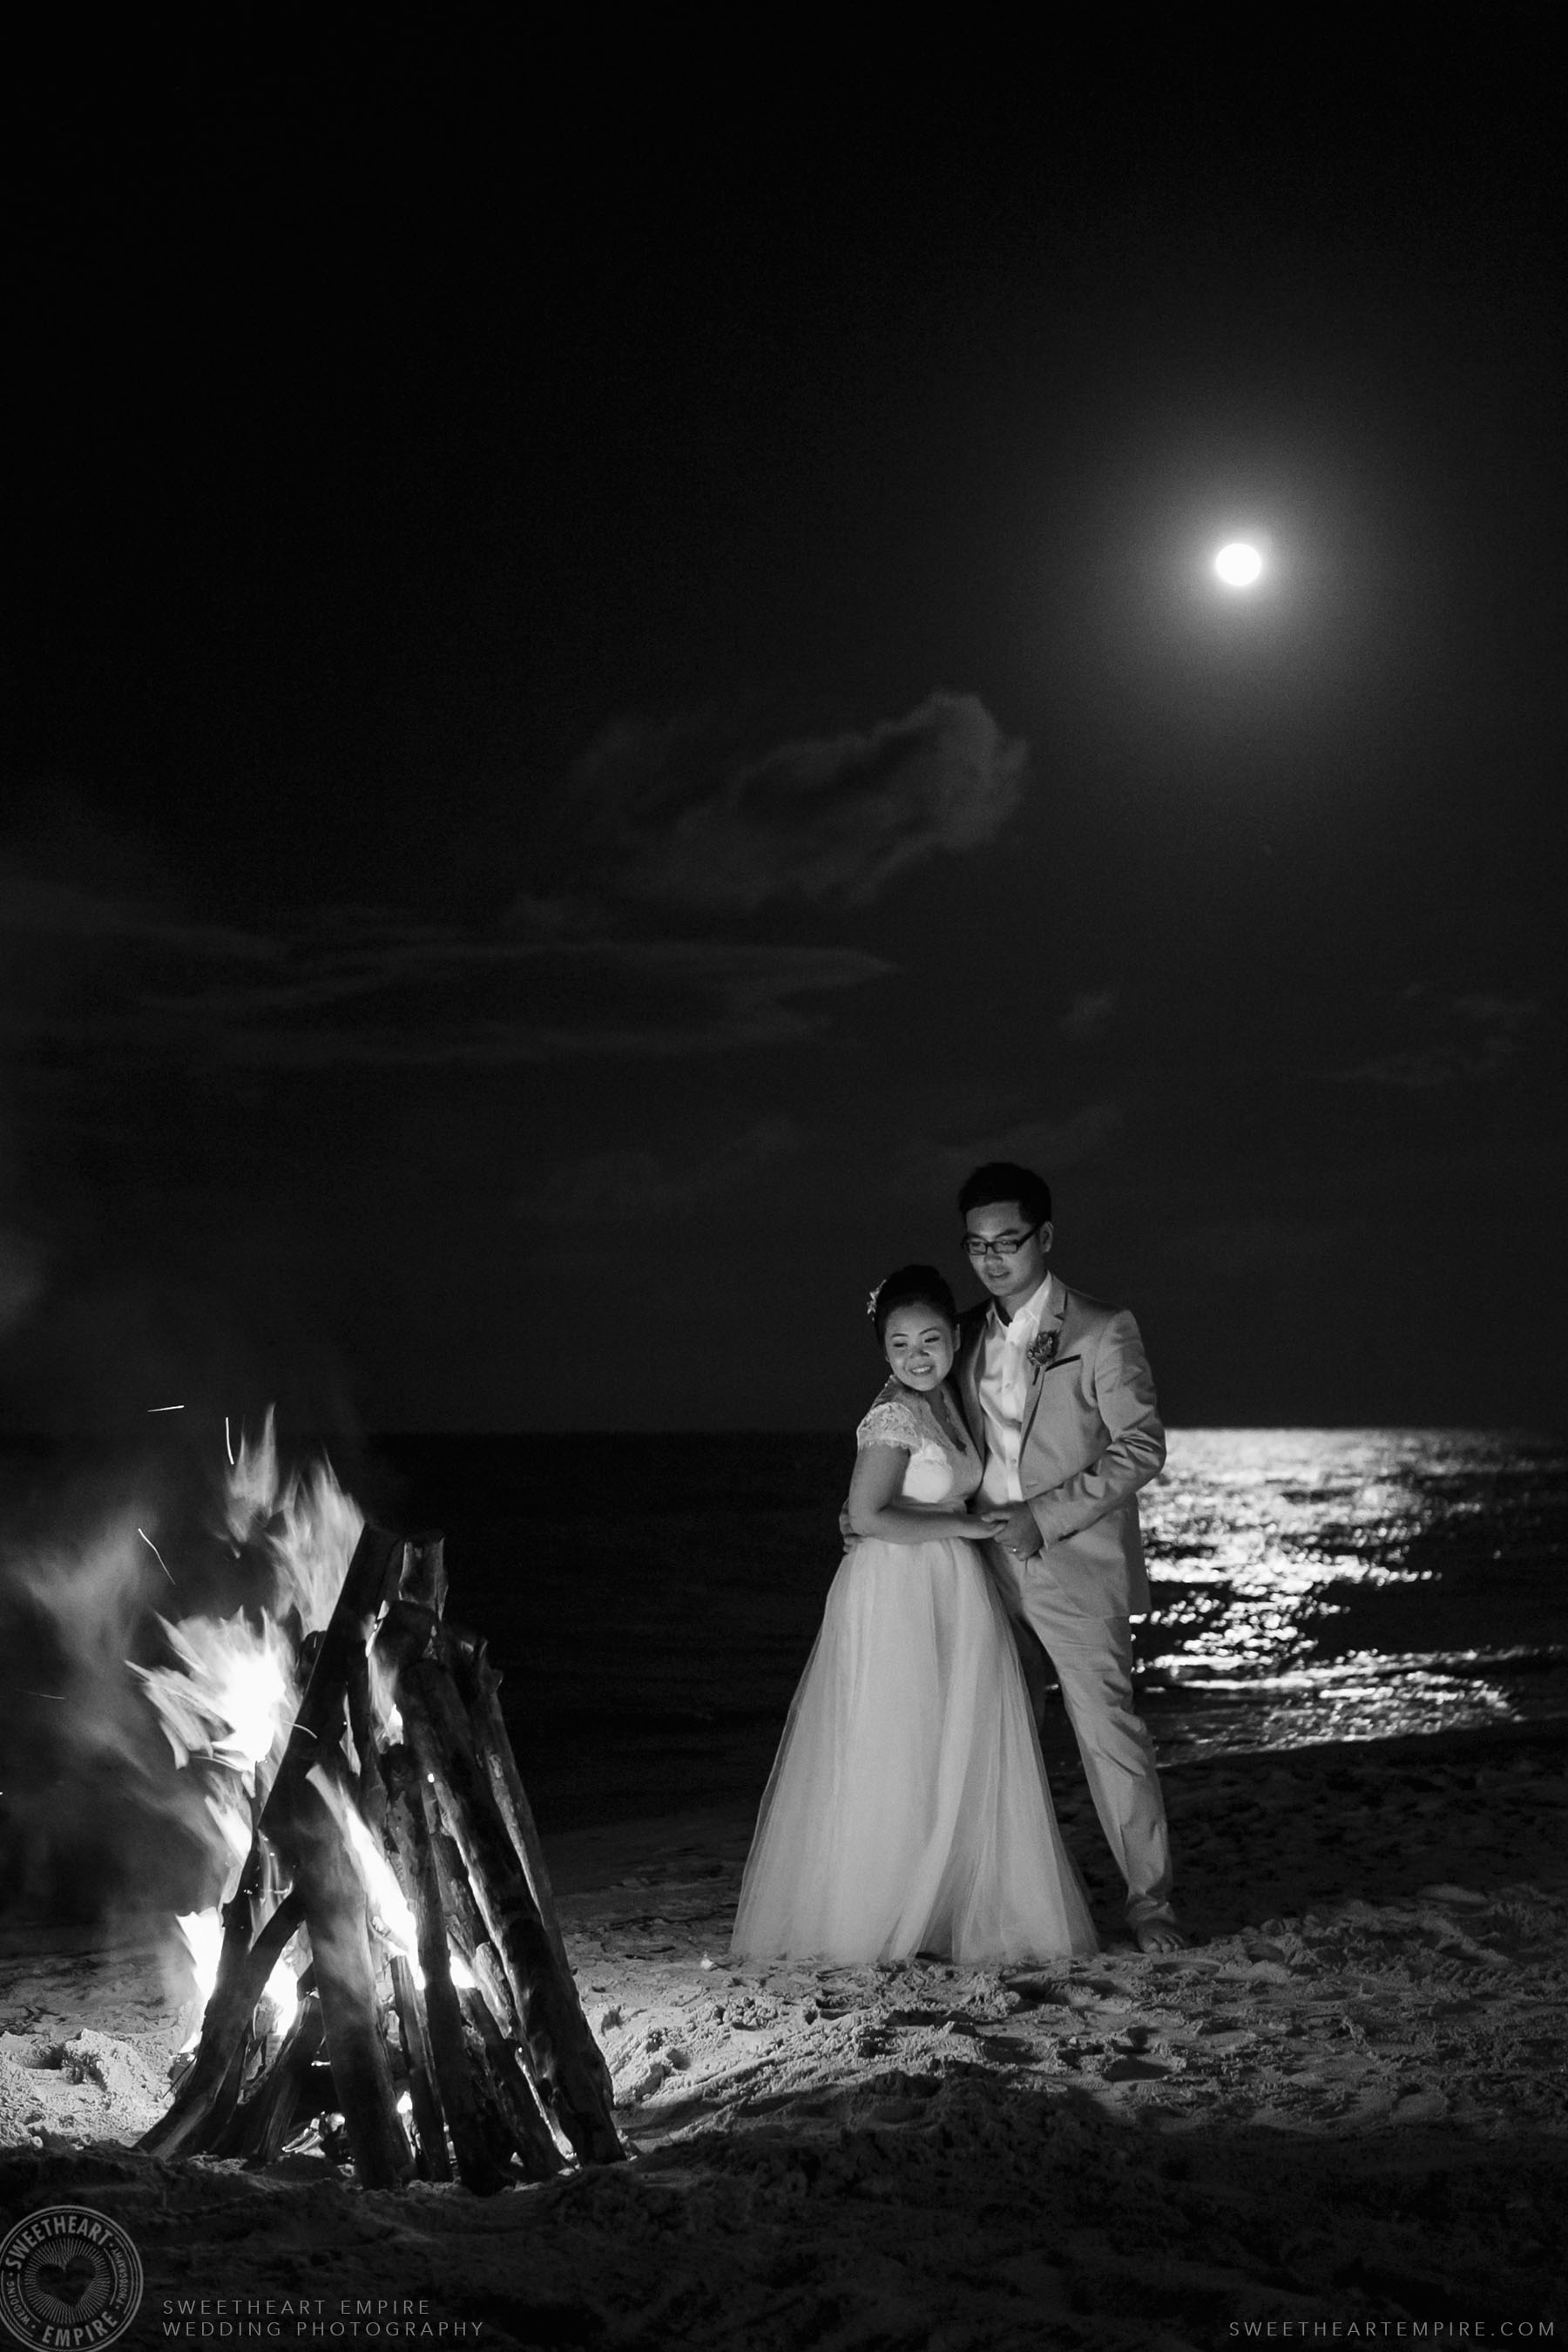 Bride and groom on the beach at night under the full moon at Iberostar Grand Hotel Rose Hall, in Montego Bay, Jamaica